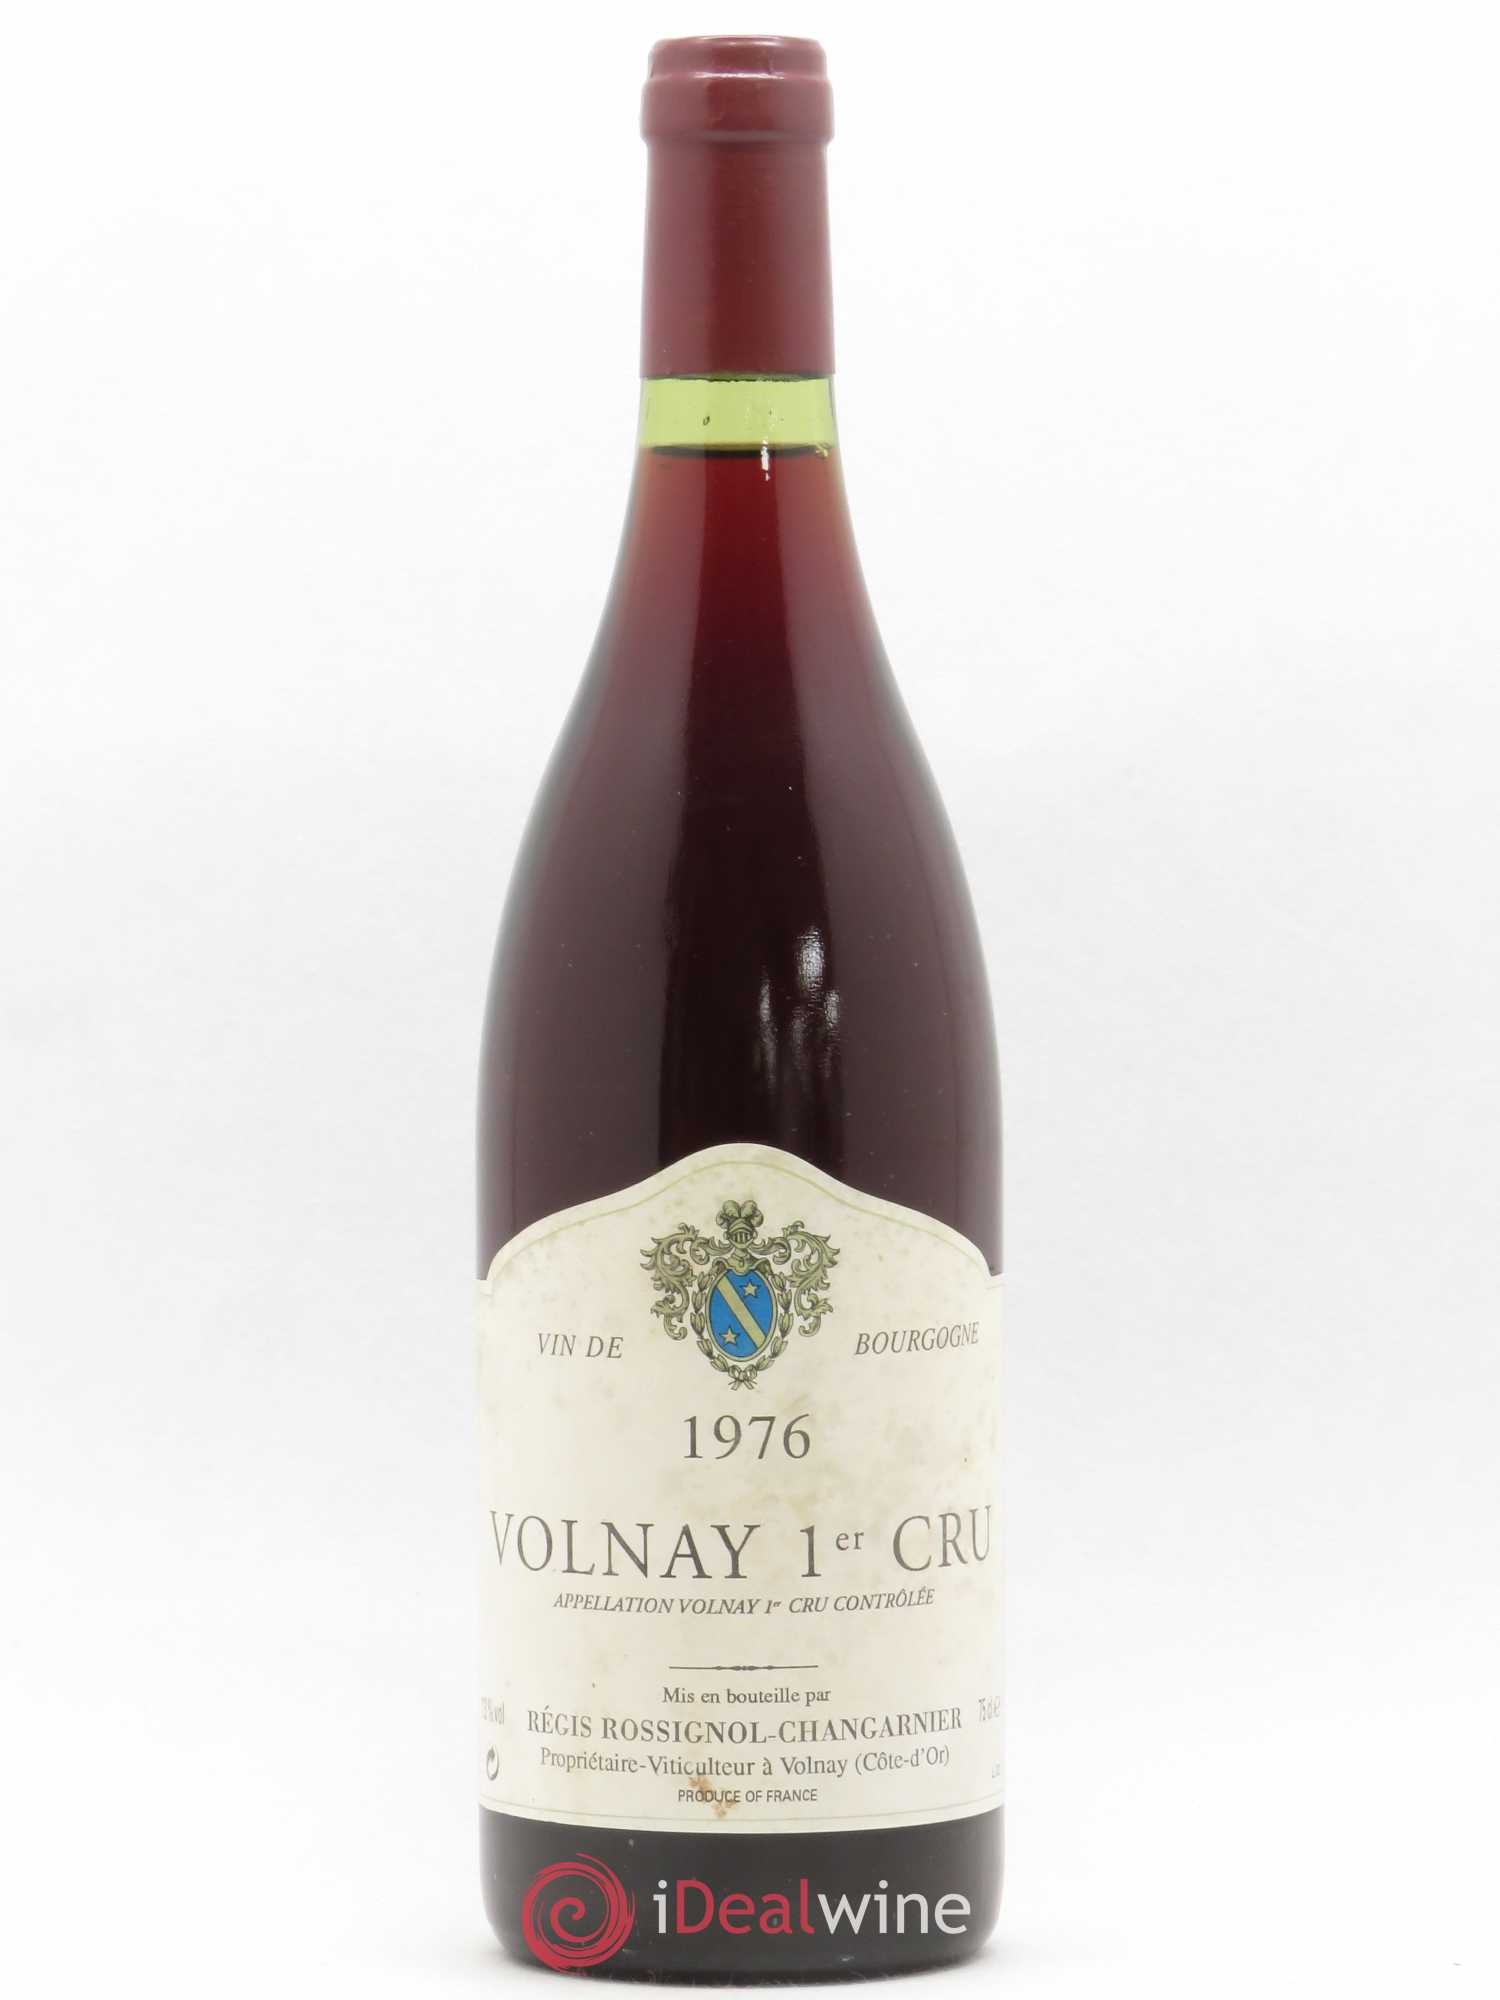 Volnay 1er Cru Rossignol Changarnier 1976 - Lot of 1 Bottle